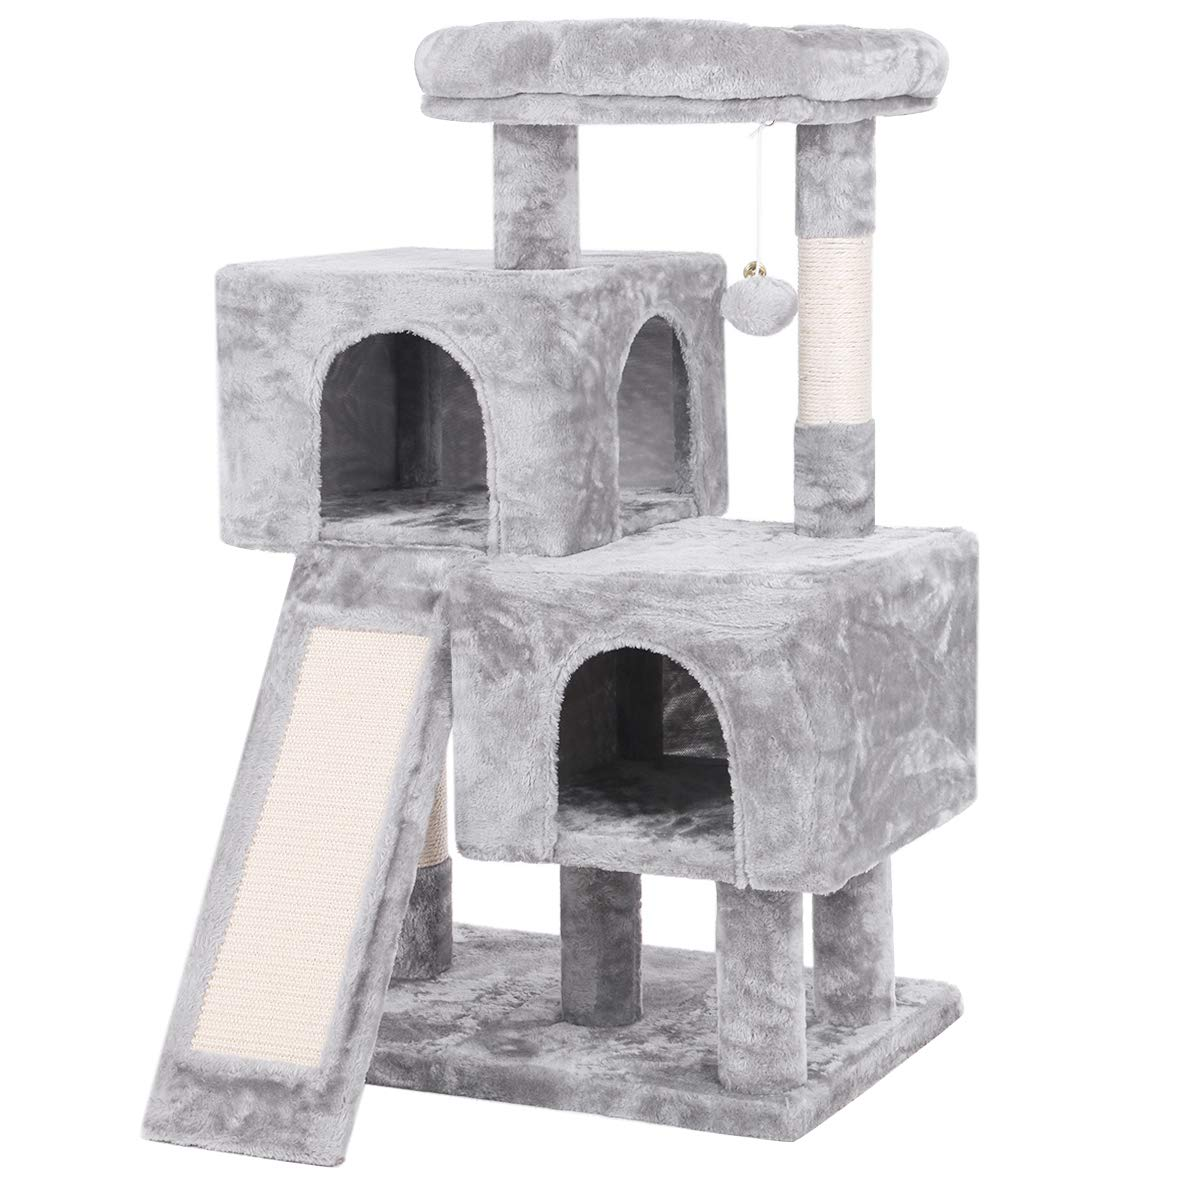 BEWISHOME Cat Tree Condo with Sisal Scratching Posts, Scratching Board, Plush Perch and Dual Houses, Cat Tower Furniture…